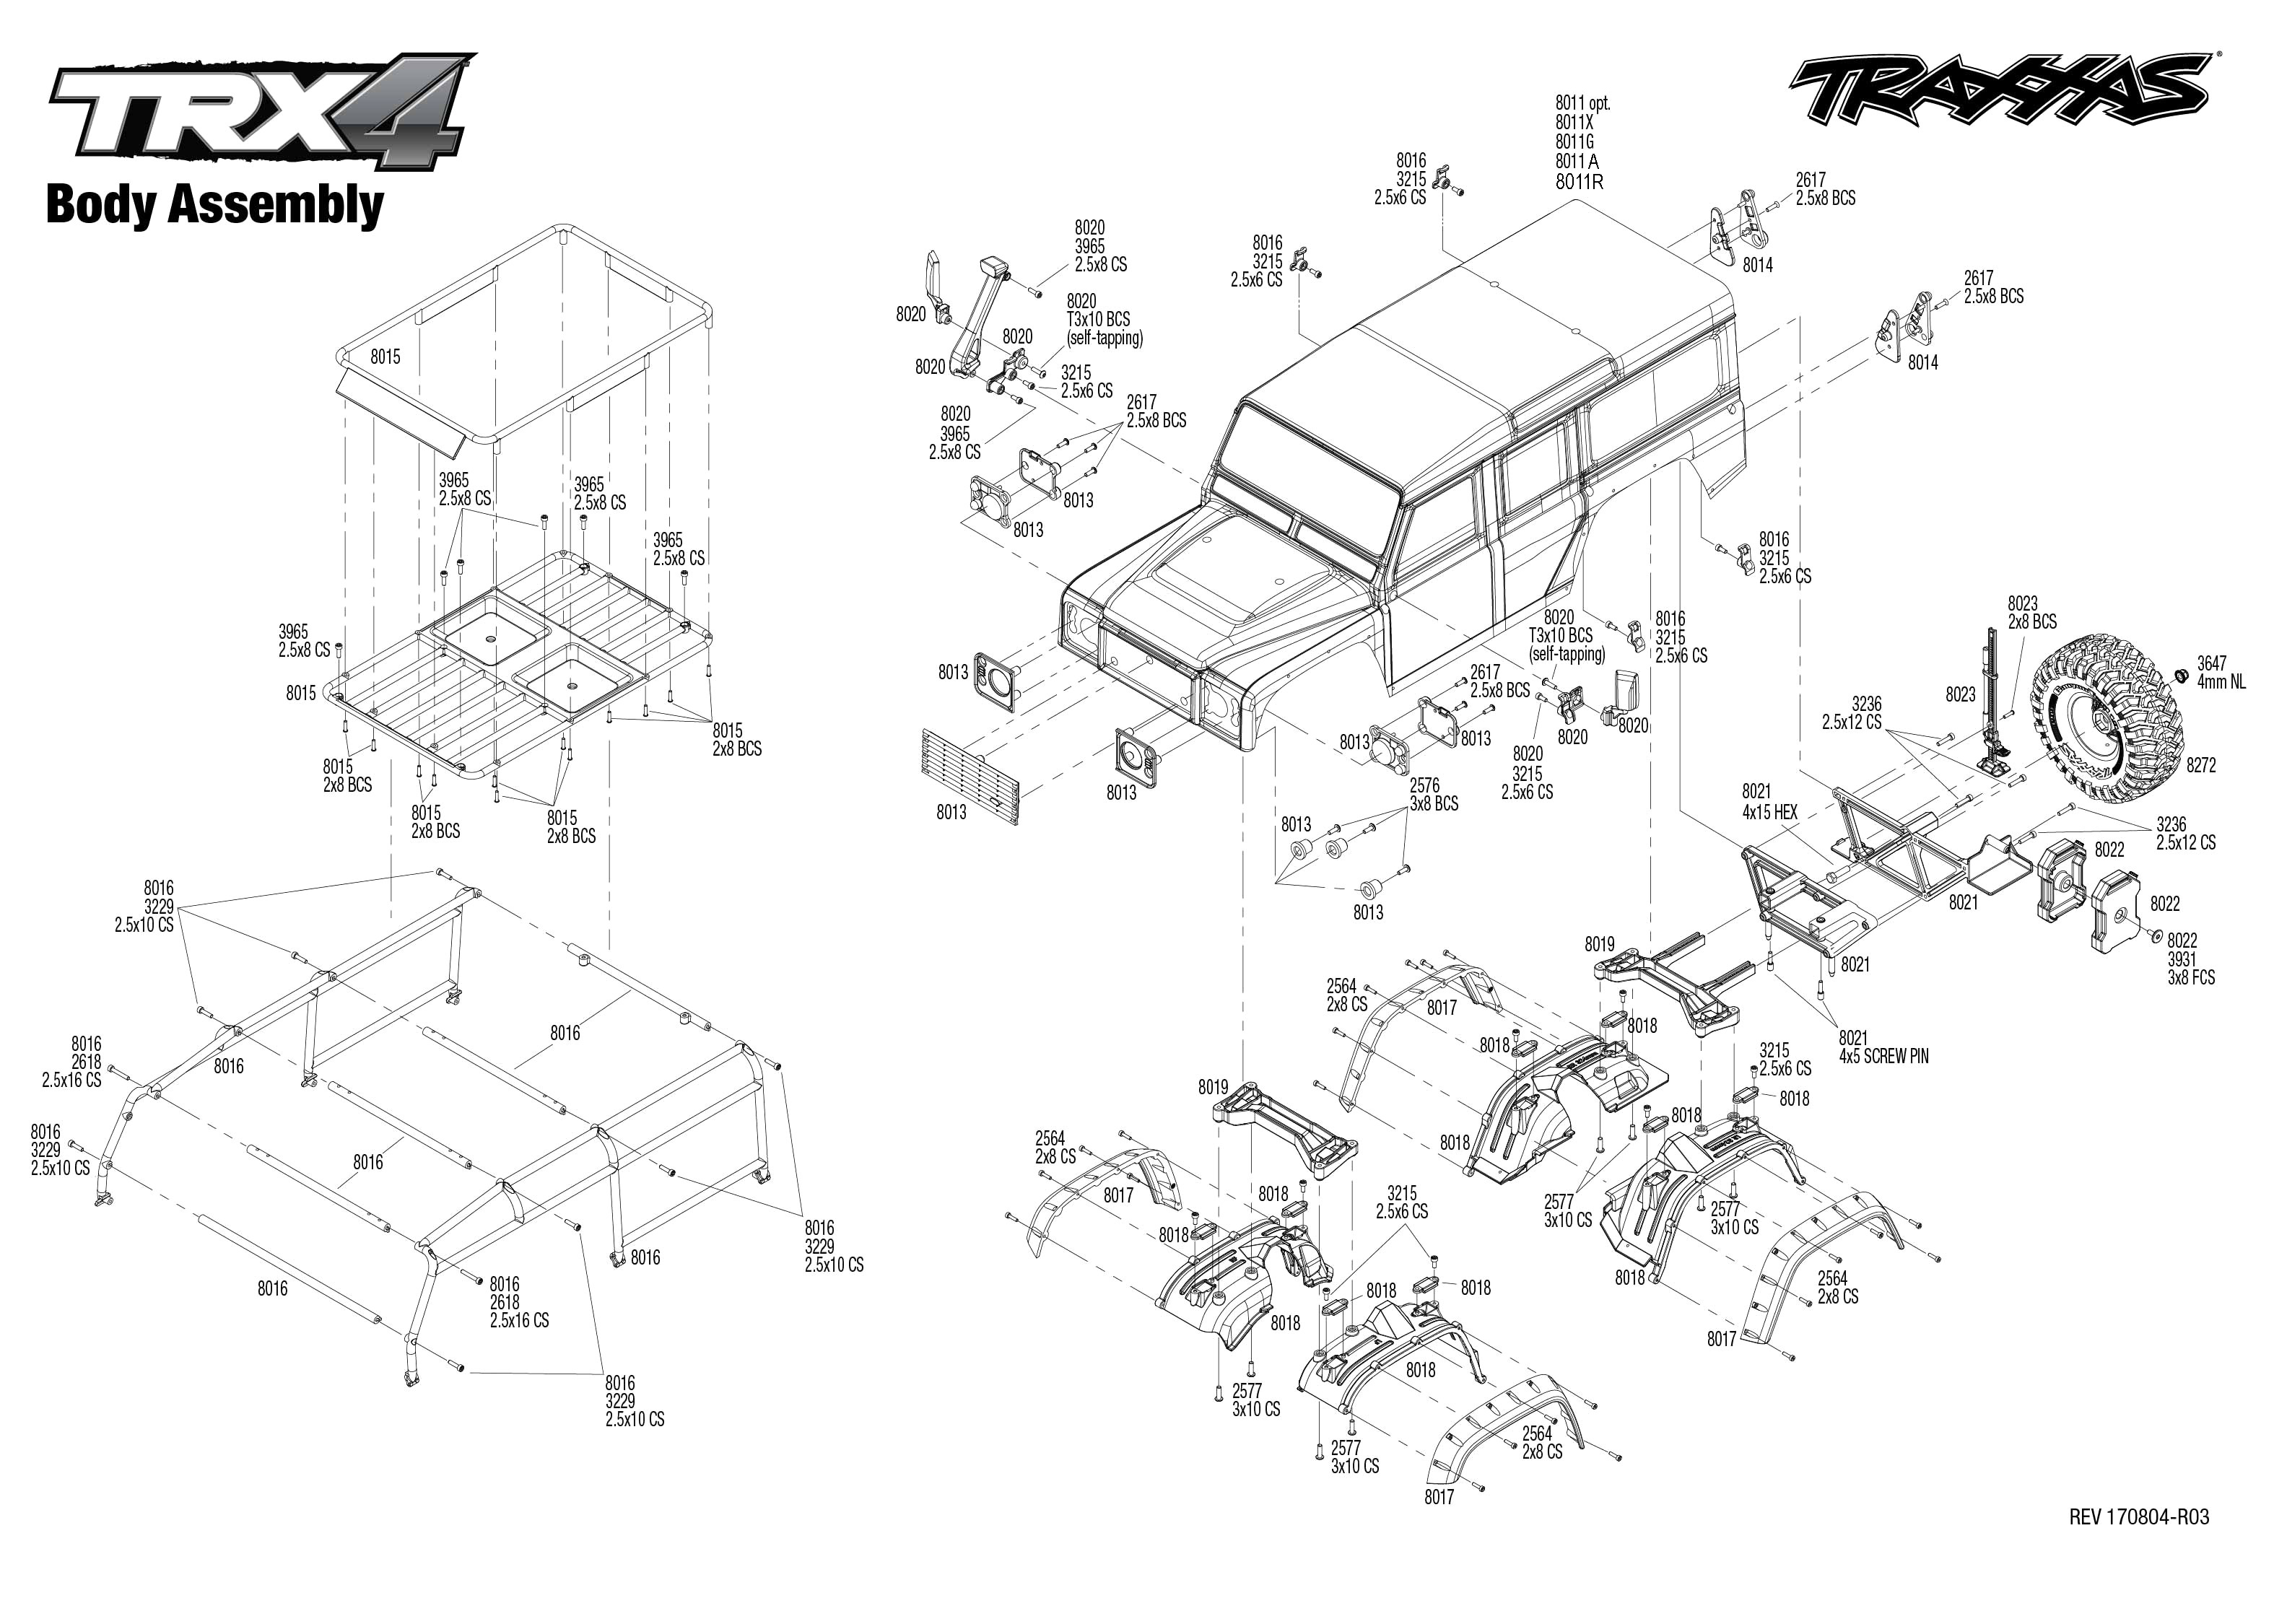 medium resolution of exploded view traxxas trx 4 land rover defender body